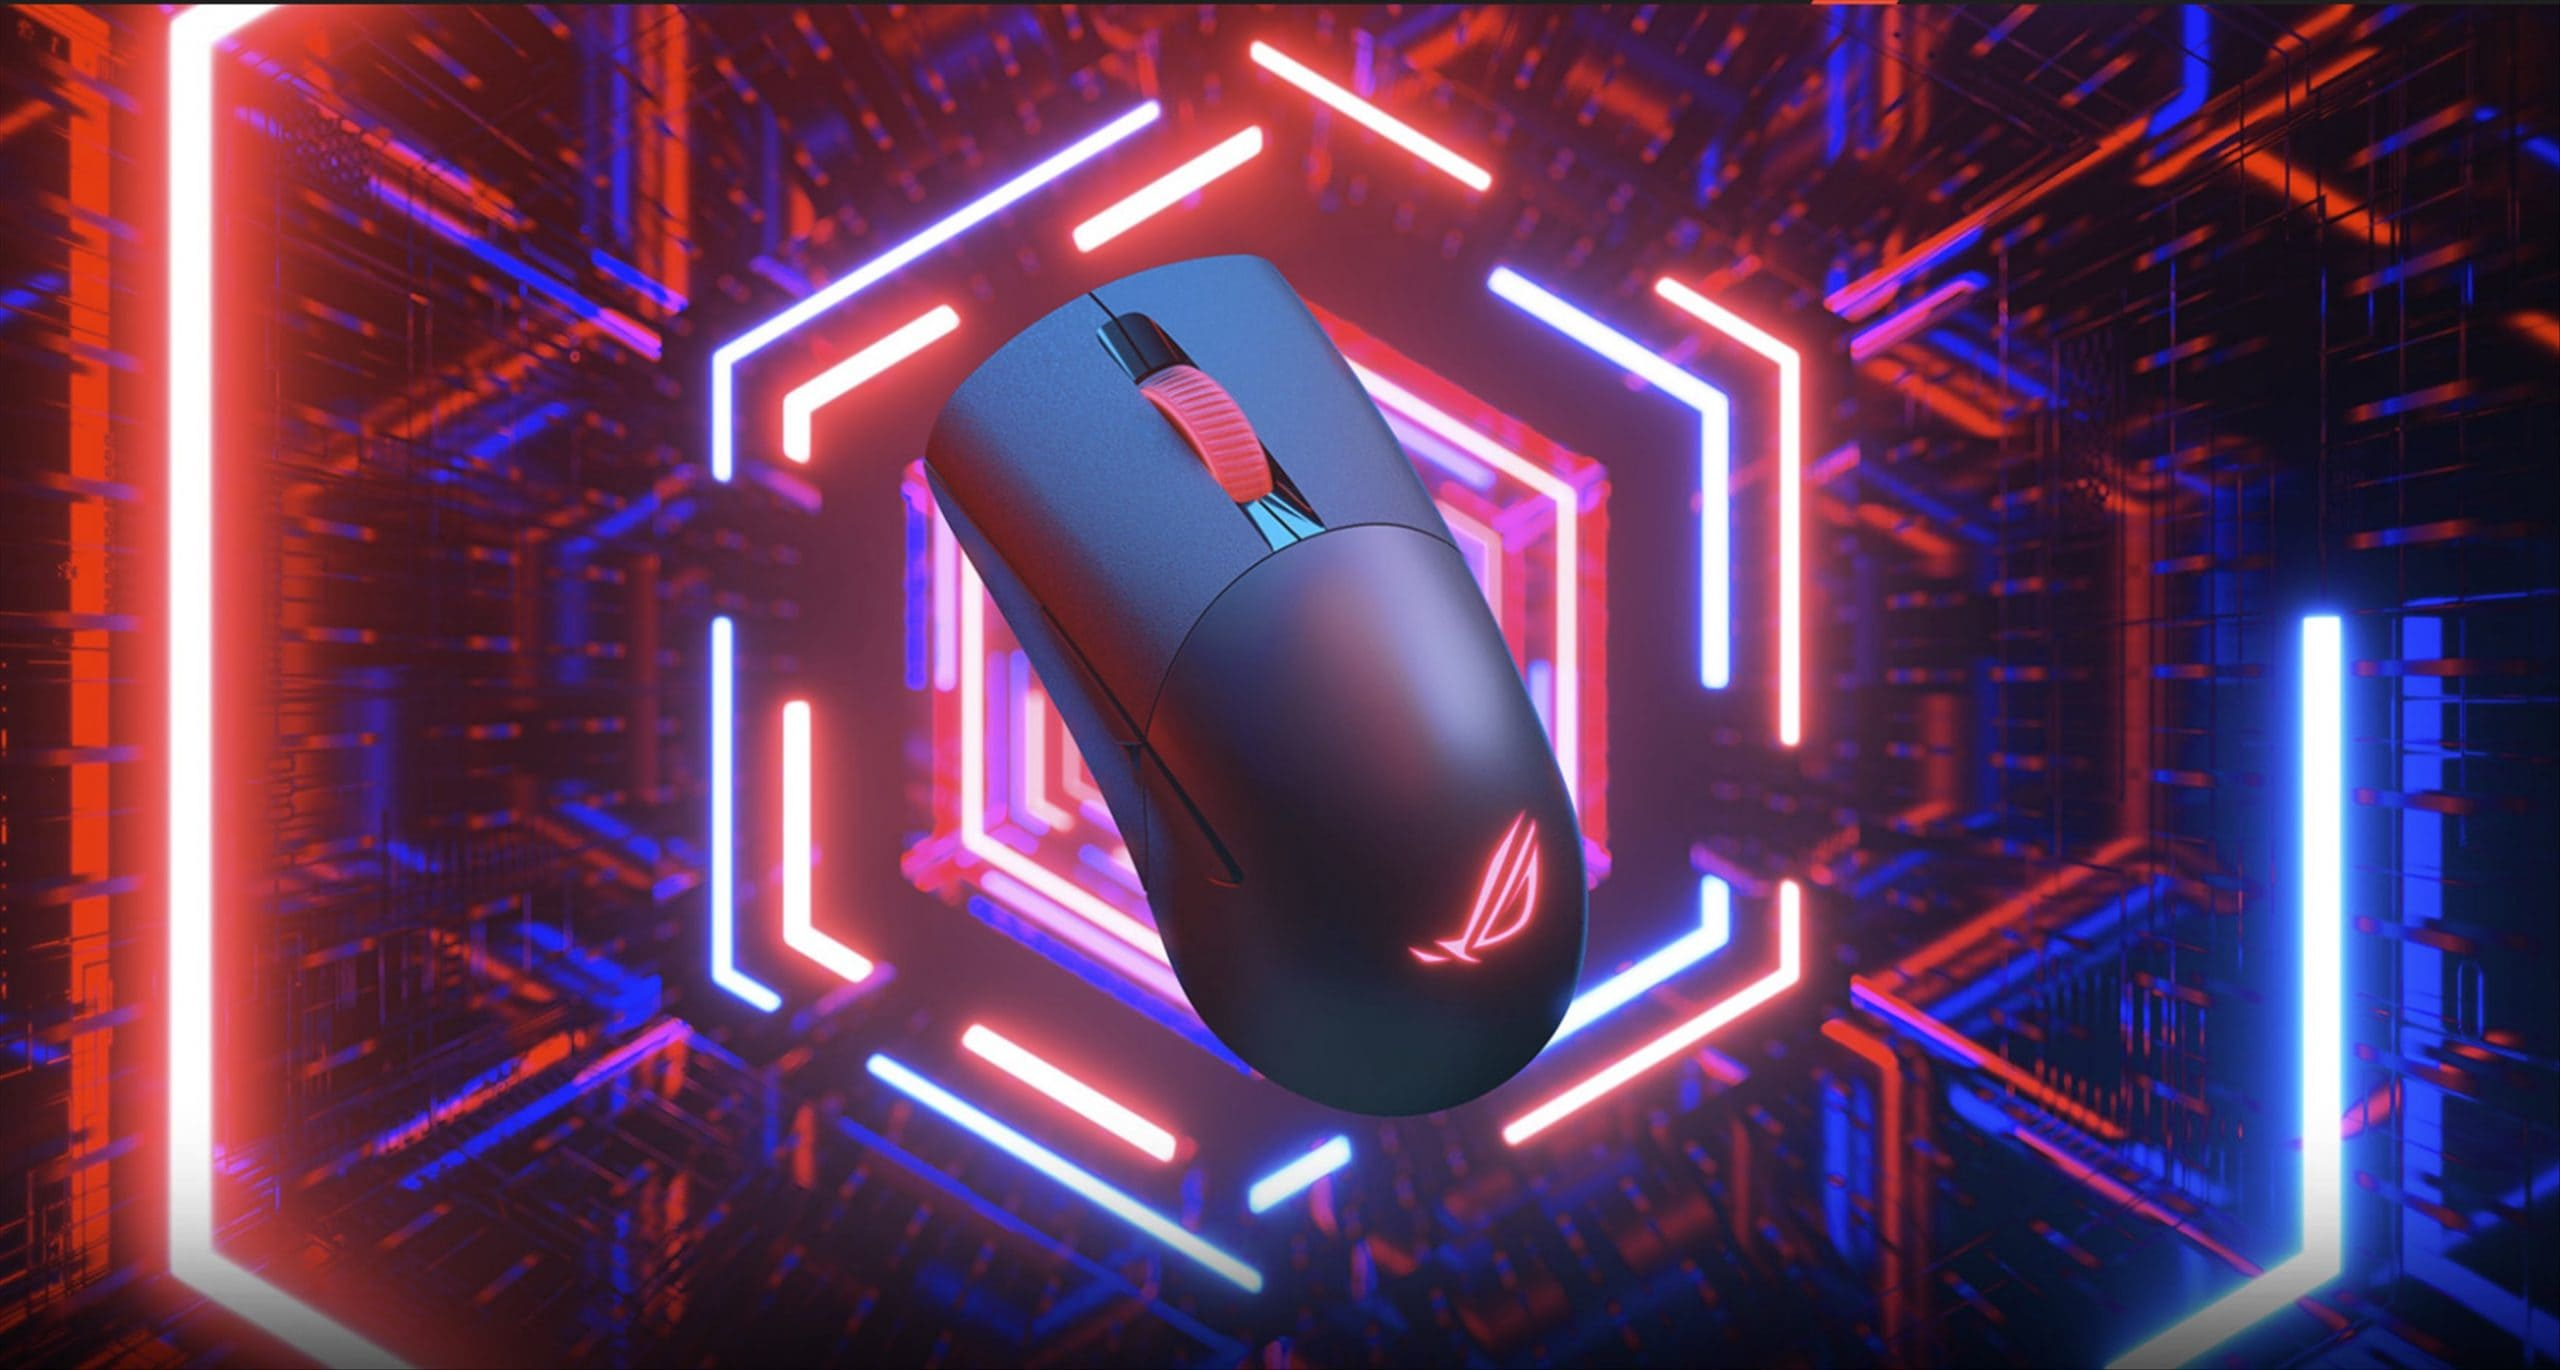 ASUS ROG Keris Wireless Gaming Mouse Review